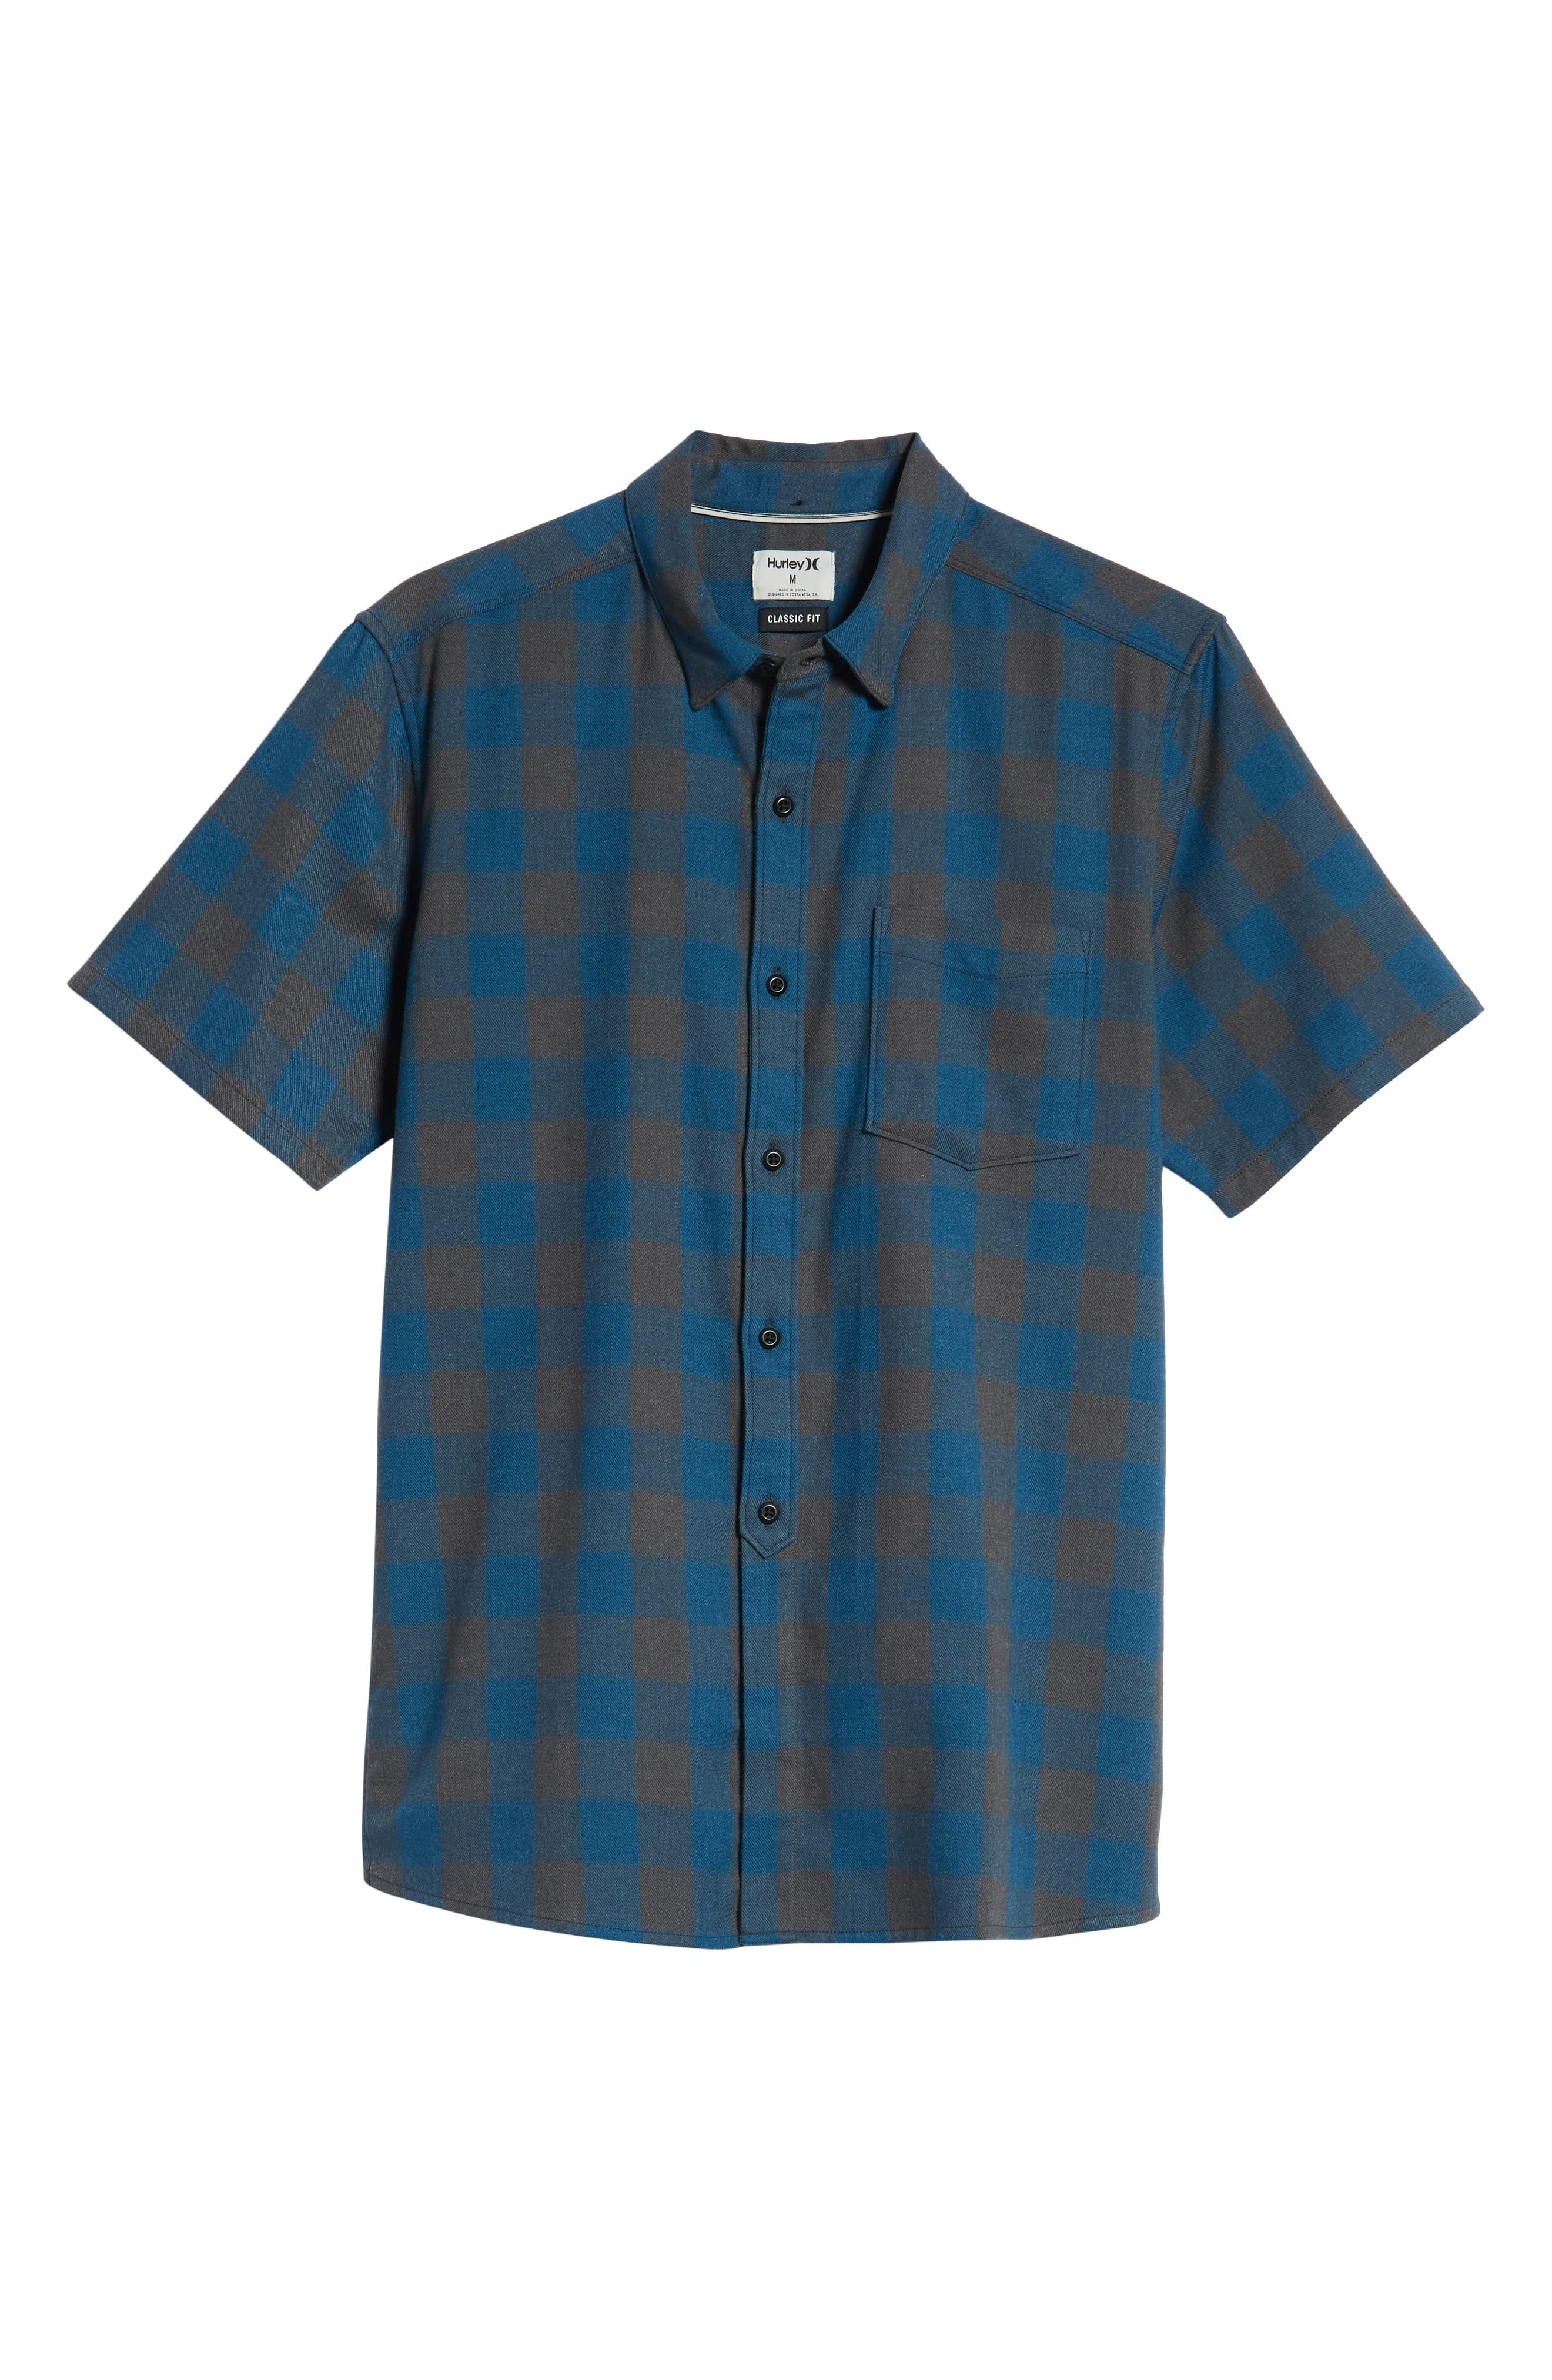 Bison Check Twill Woven Shirt,                             Alternate thumbnail 5, color,                             BLUE FORCE HEATHER